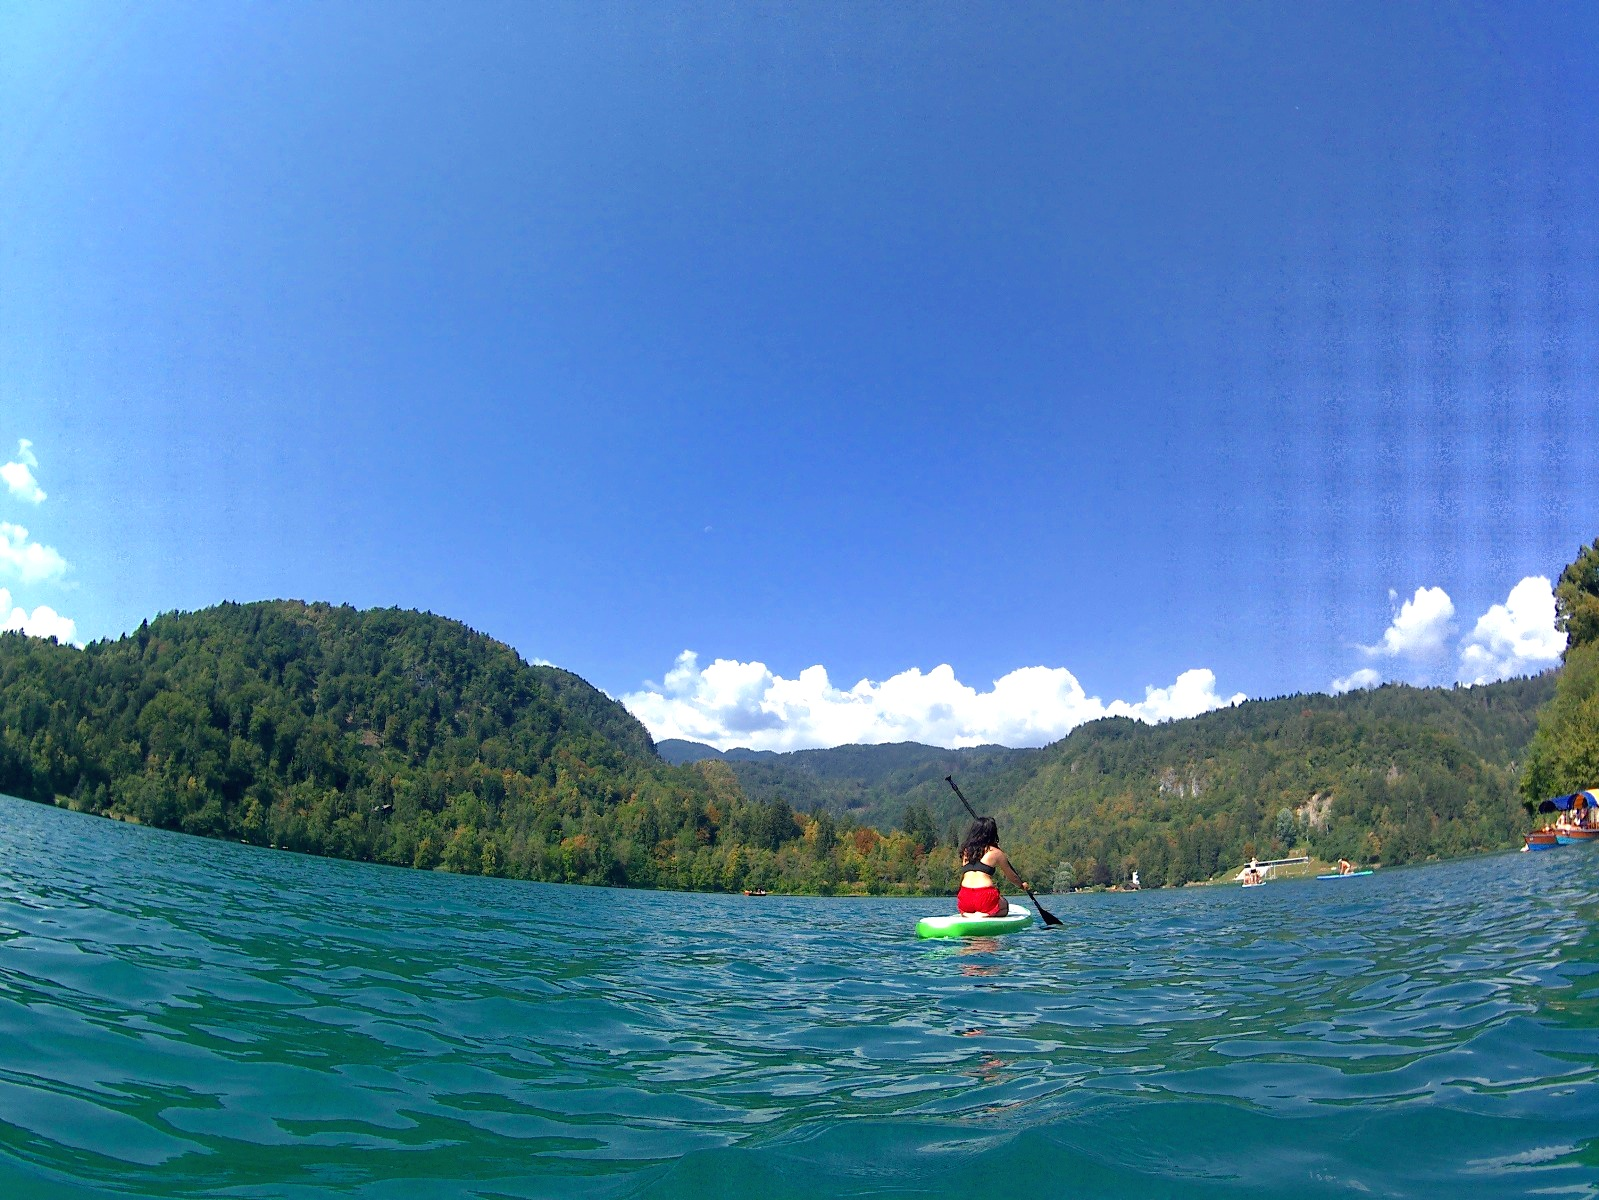 Stand up paddle boarding in Lake Bled for 10 euros